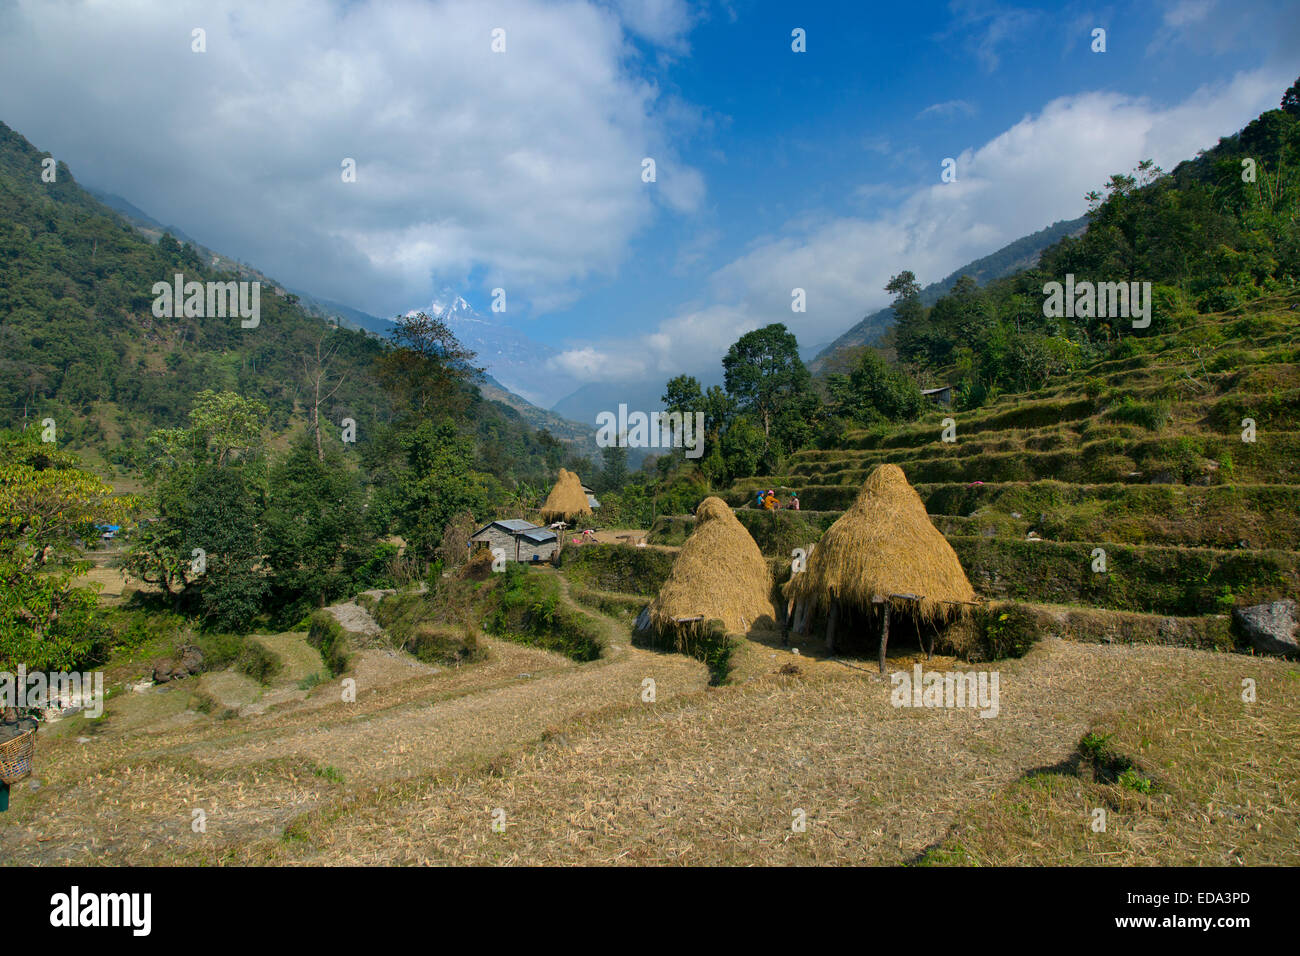 farming near mountain village of Ghandruk in the Modi Khola Valley at around 2000 metres Annapurna in background - Stock Image